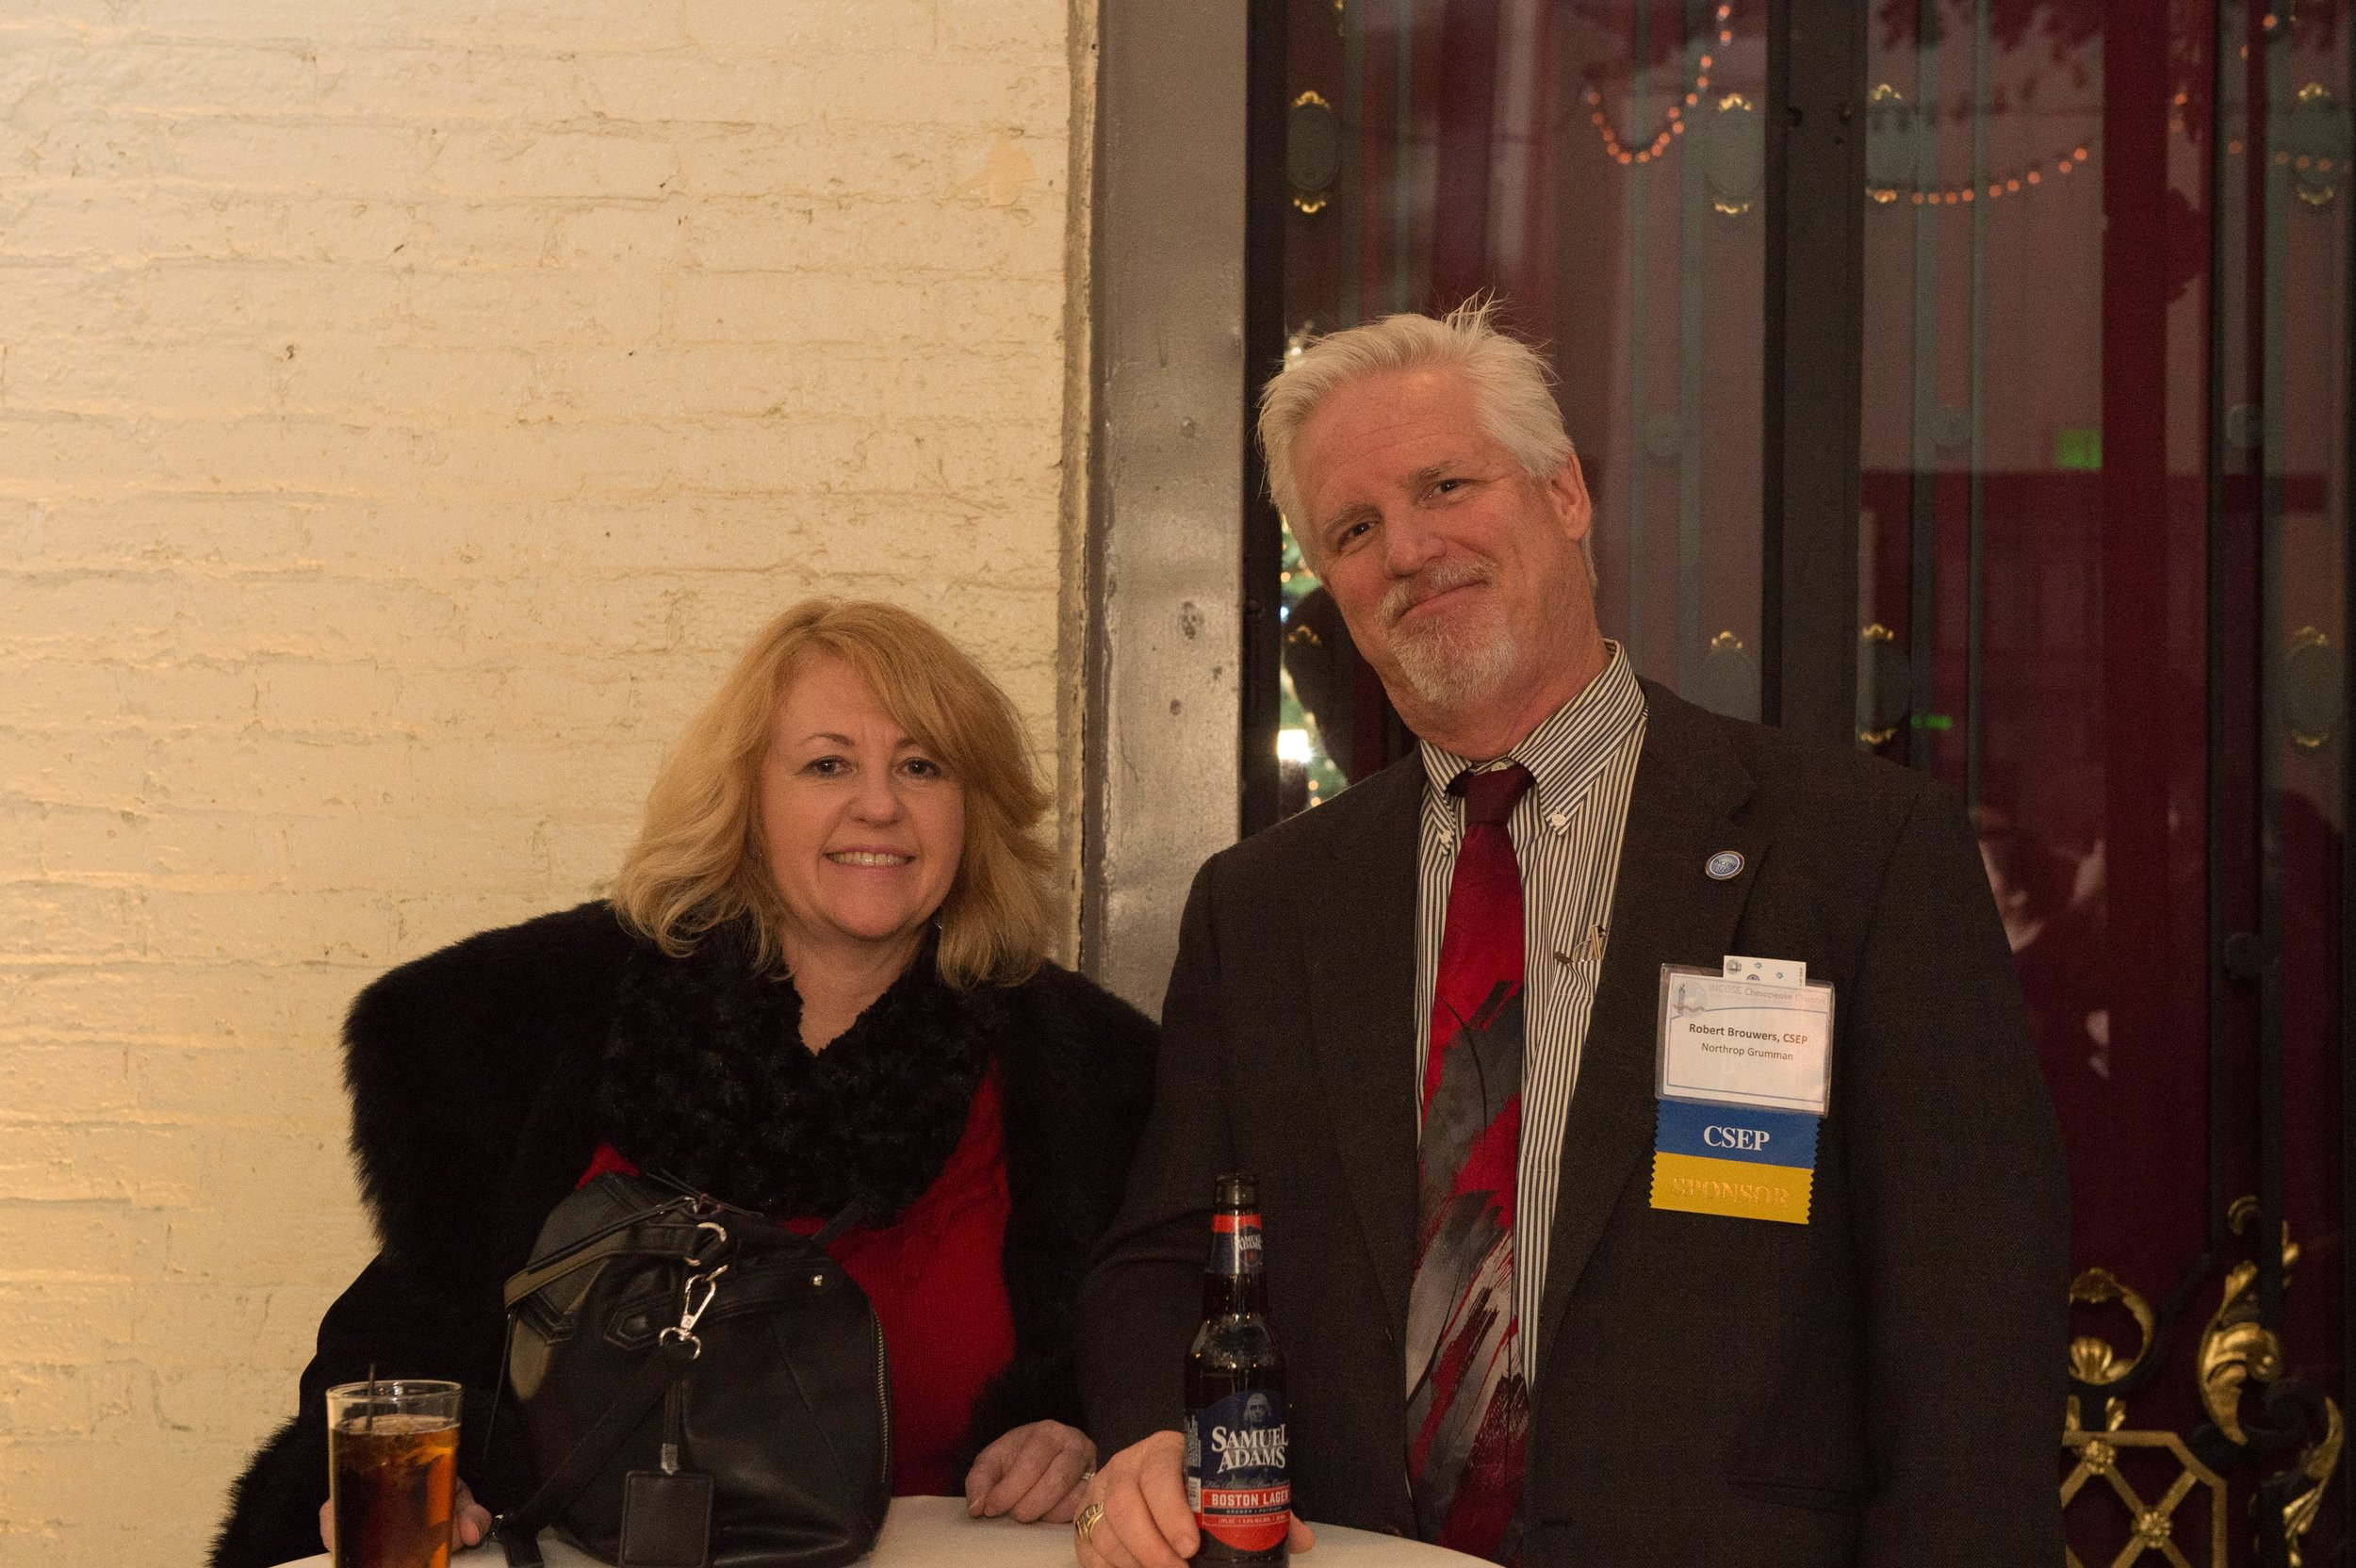 Bob and Candice Brouwers enjoying the holiday festivities at the Engineers Club in Baltimore